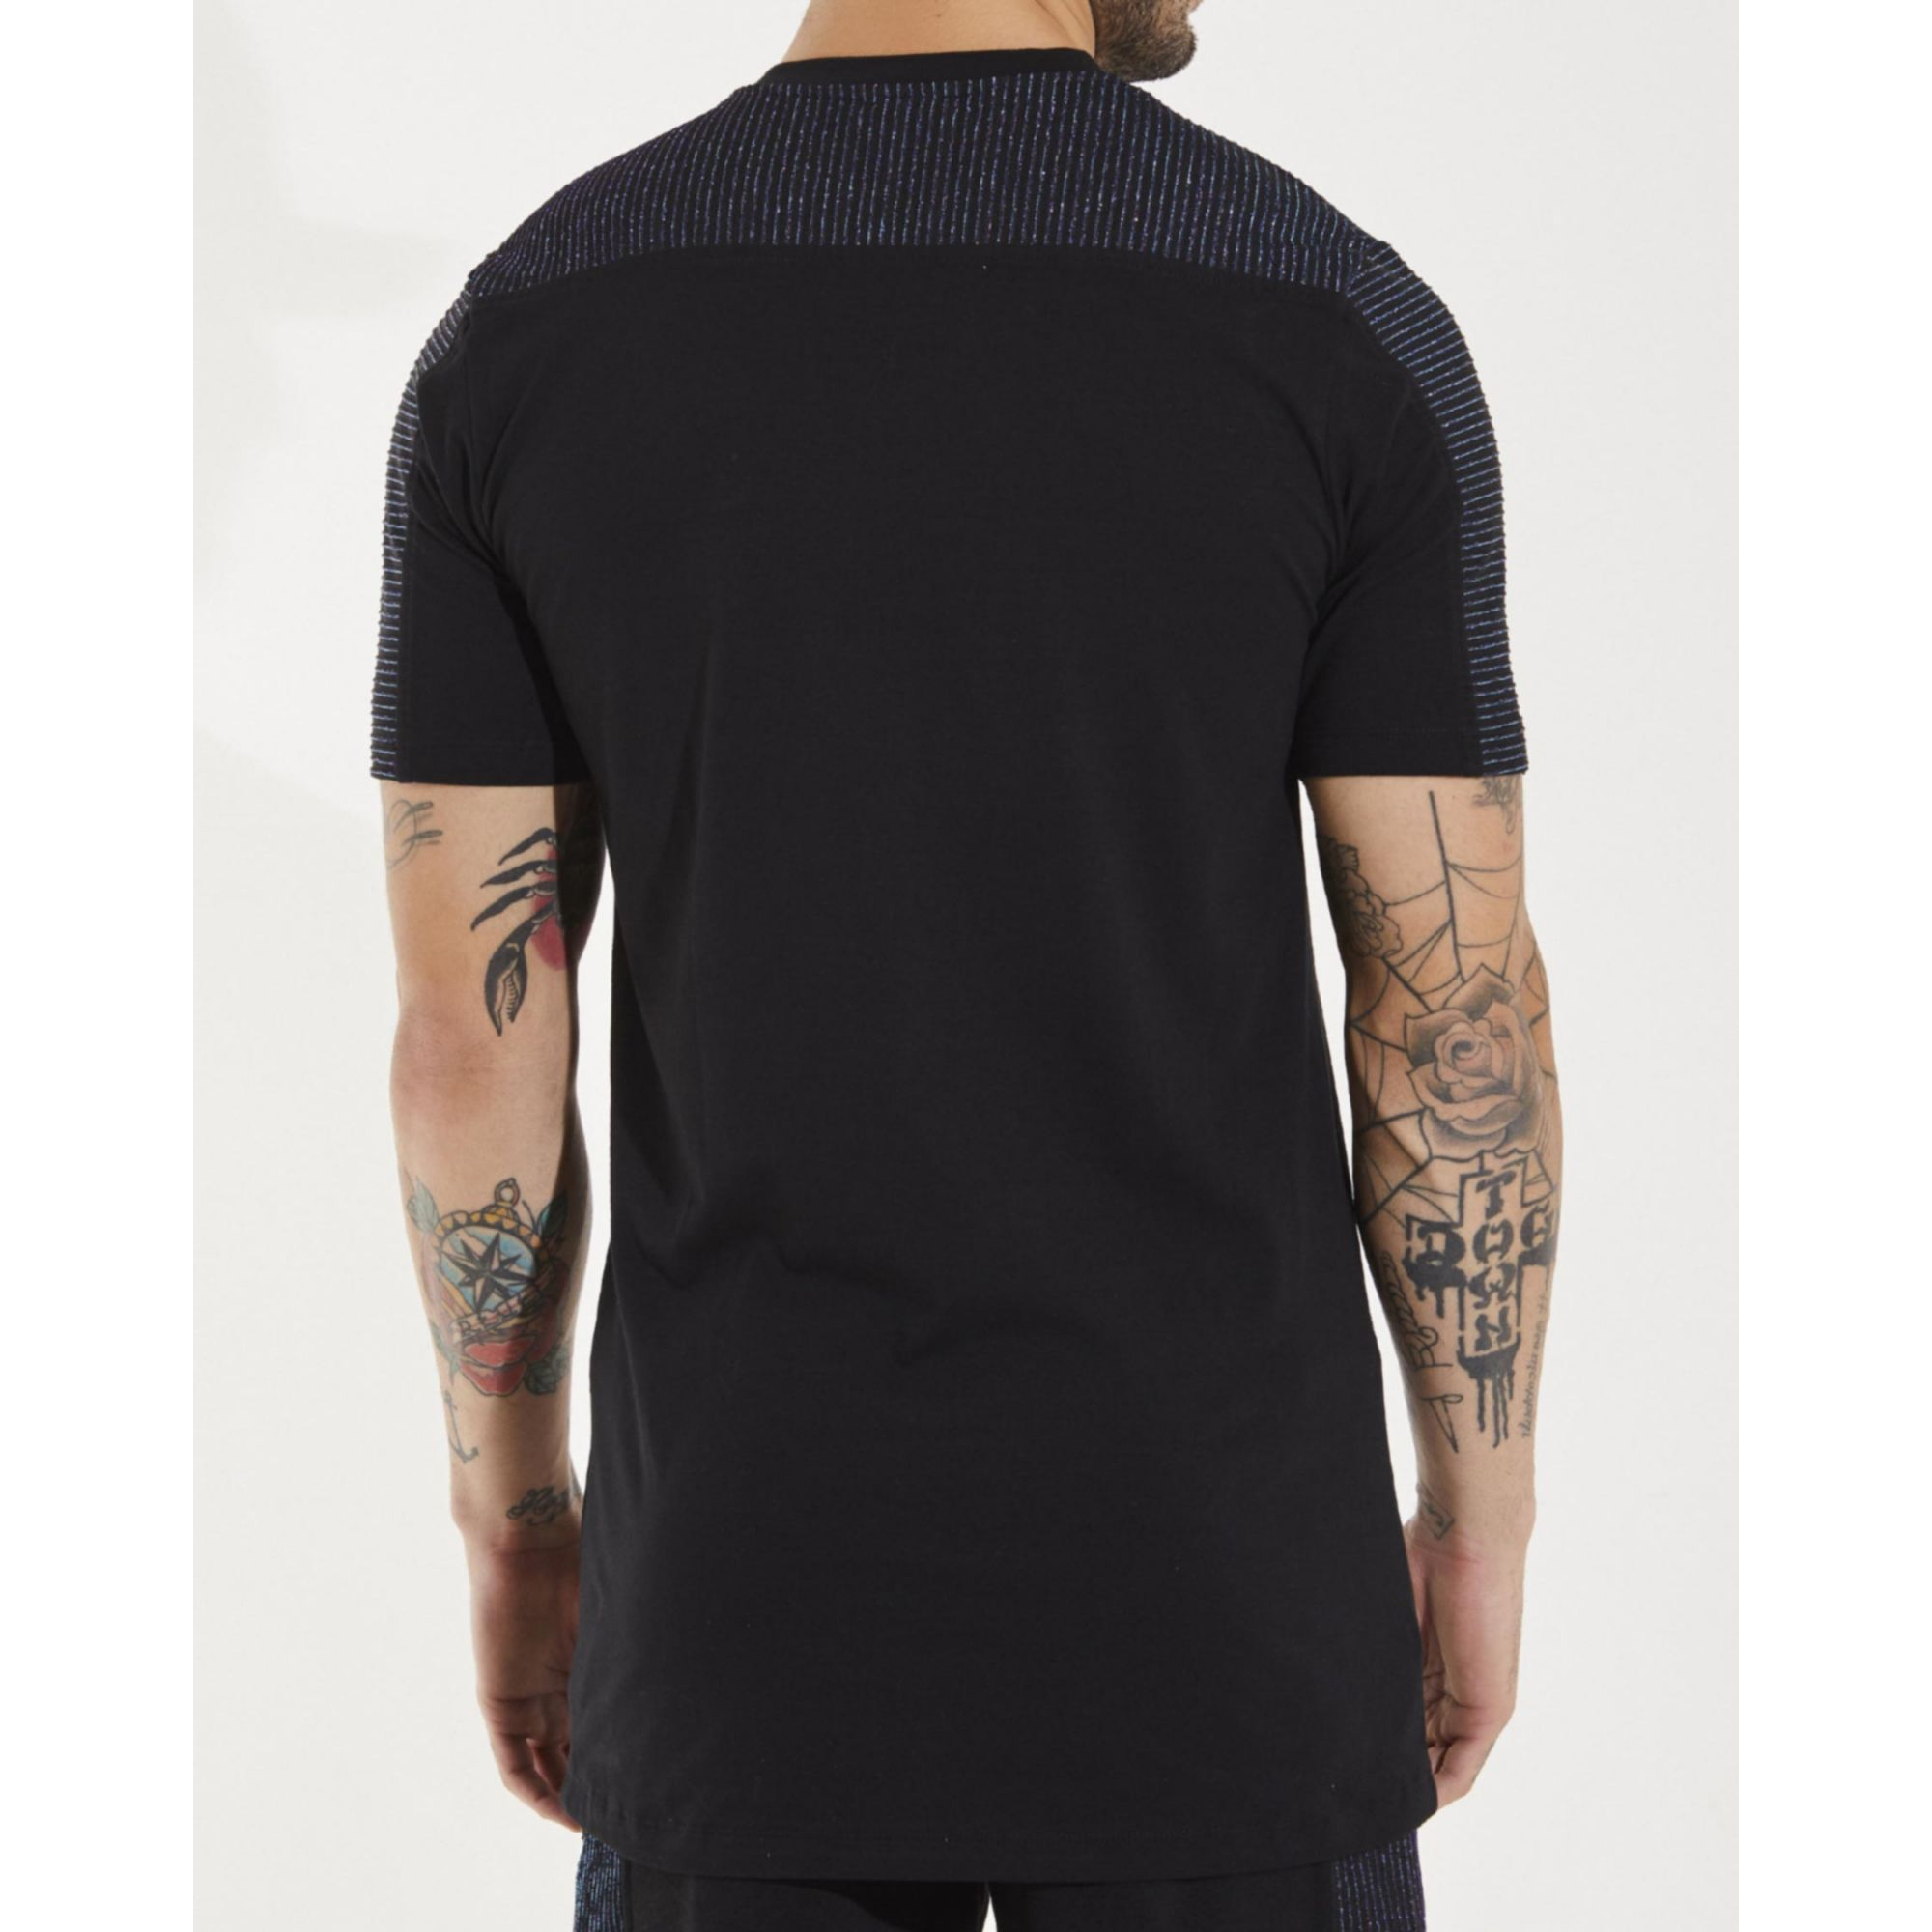 Camiseta Buh Lurex Black